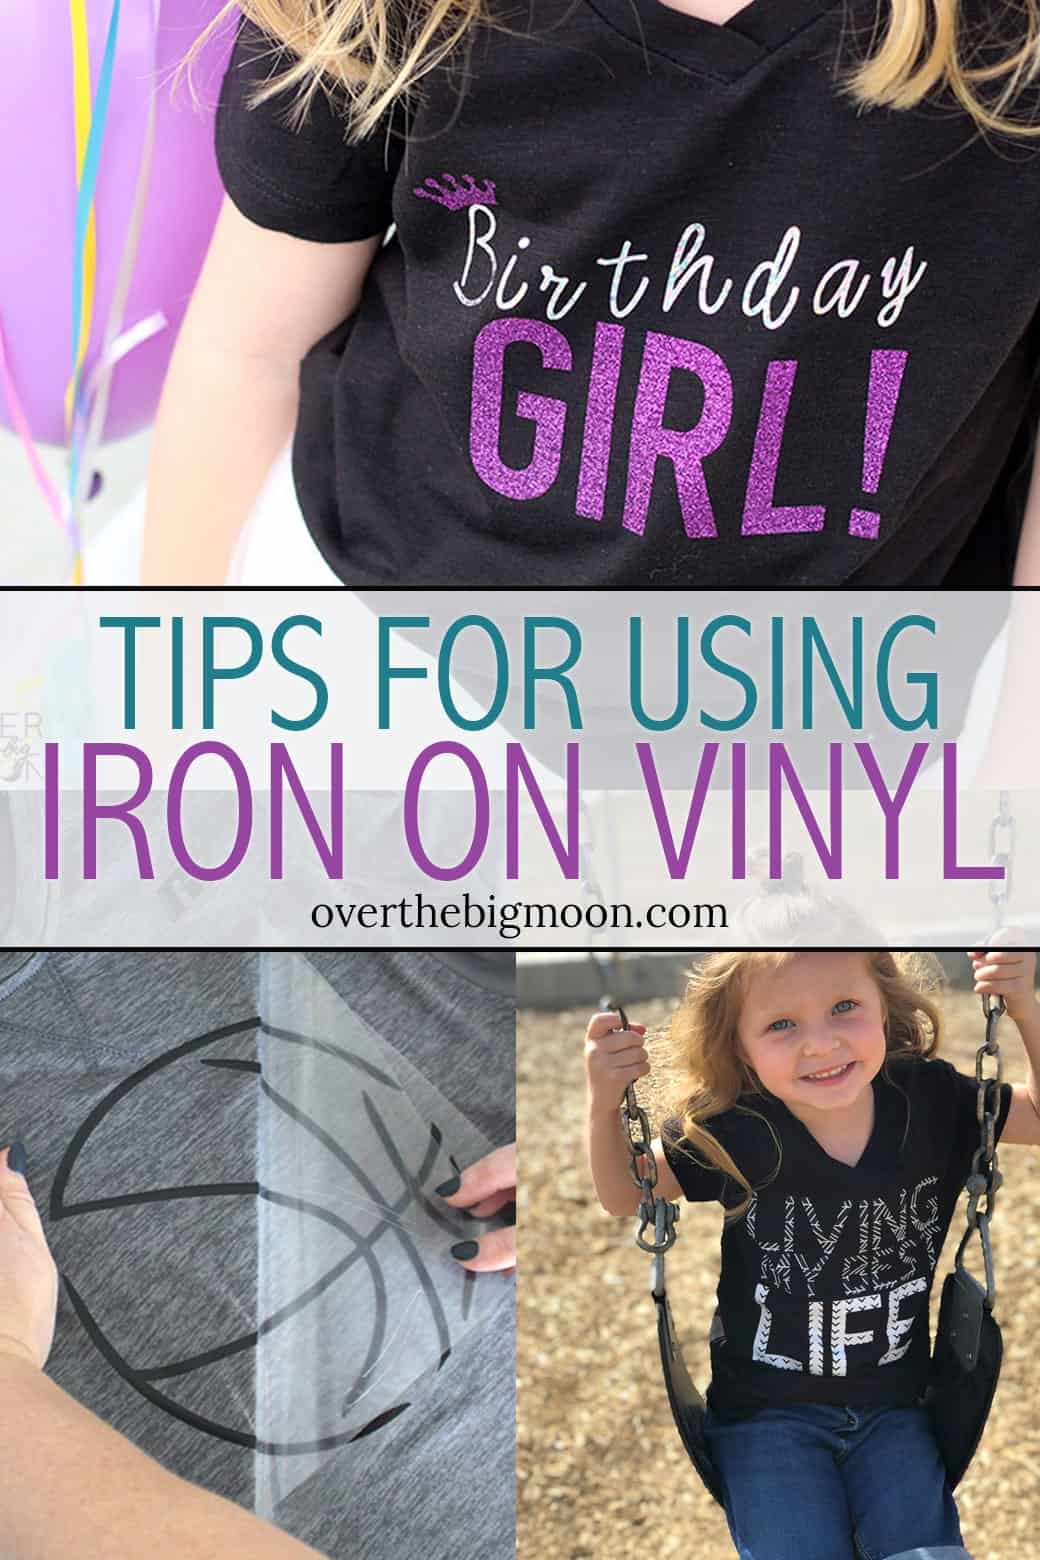 Tips for Using Iron On Vinyl - come see all the different types of Iron On, when you should use what Iron On and if and how they can be layered! From overthebigmoon.com!